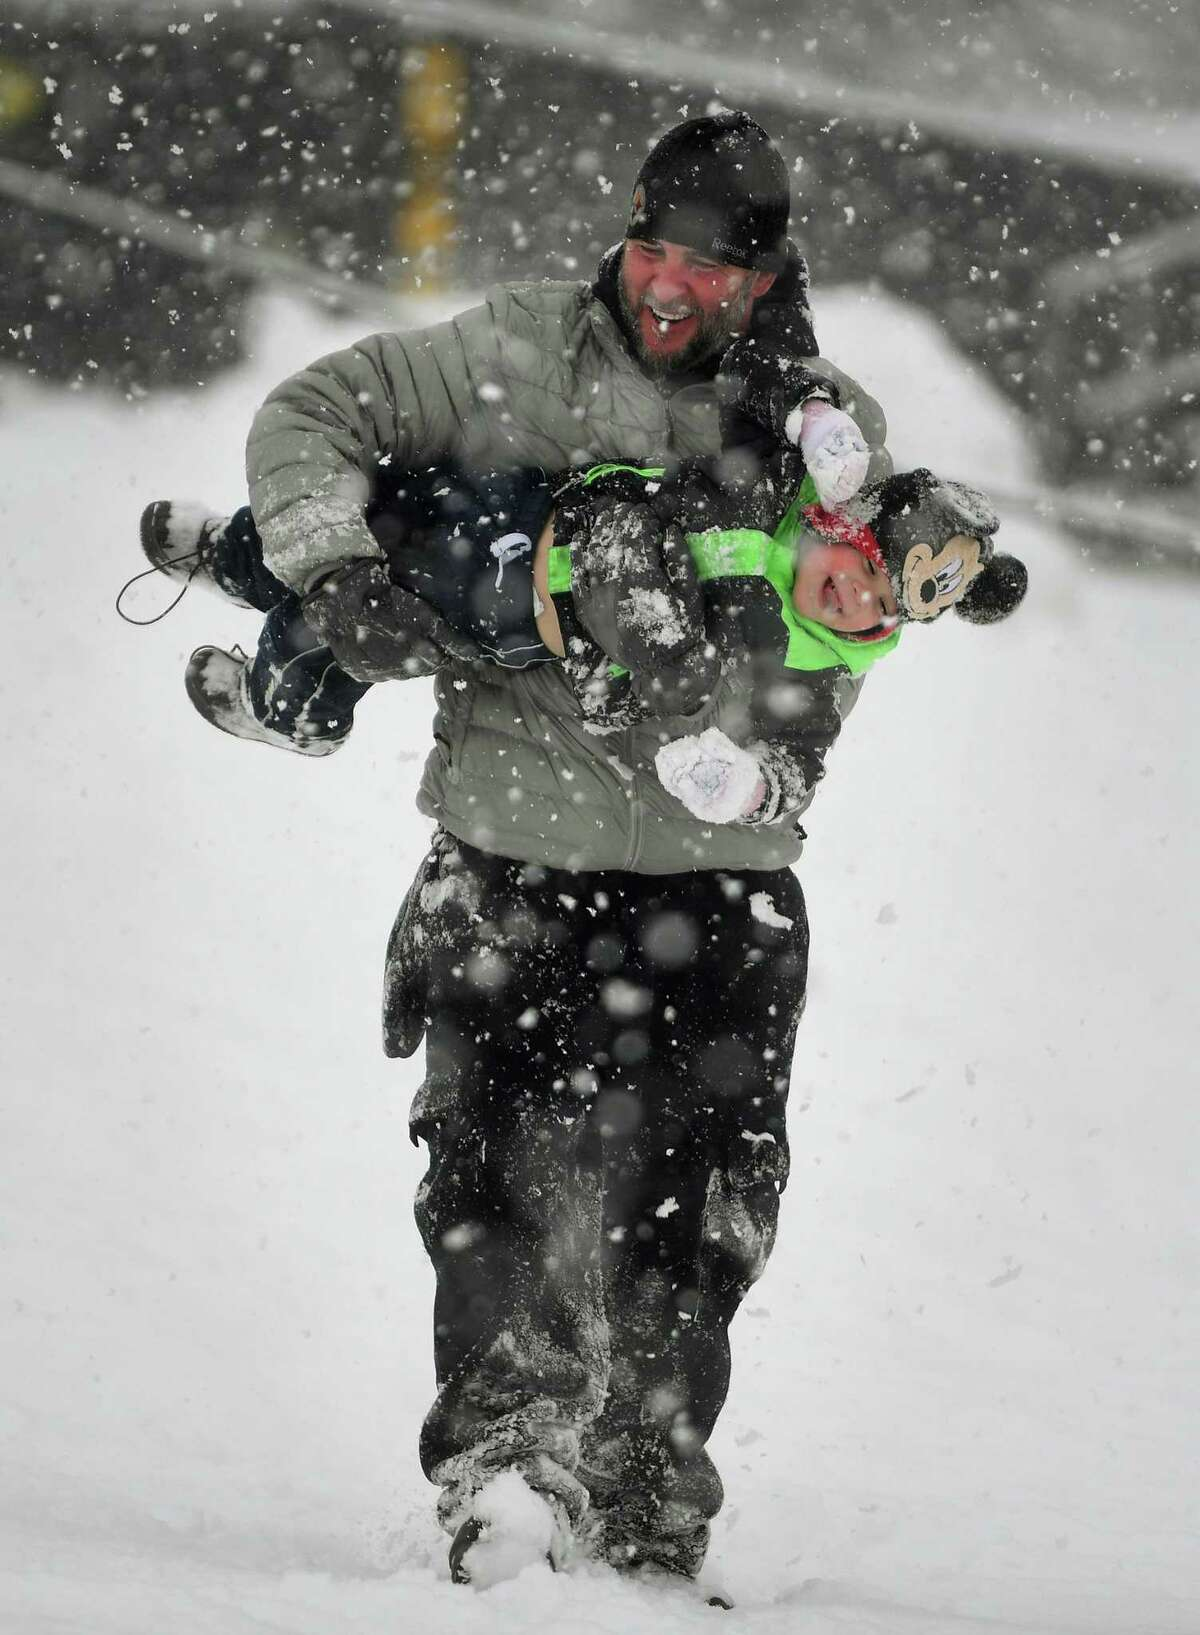 David Salerno and son Ethan, 2, of Milford, enjoy the snow during an afternoon of sledding at Jonathon Law High School in Miford, Conn. on Sunday, February 7, 2021.